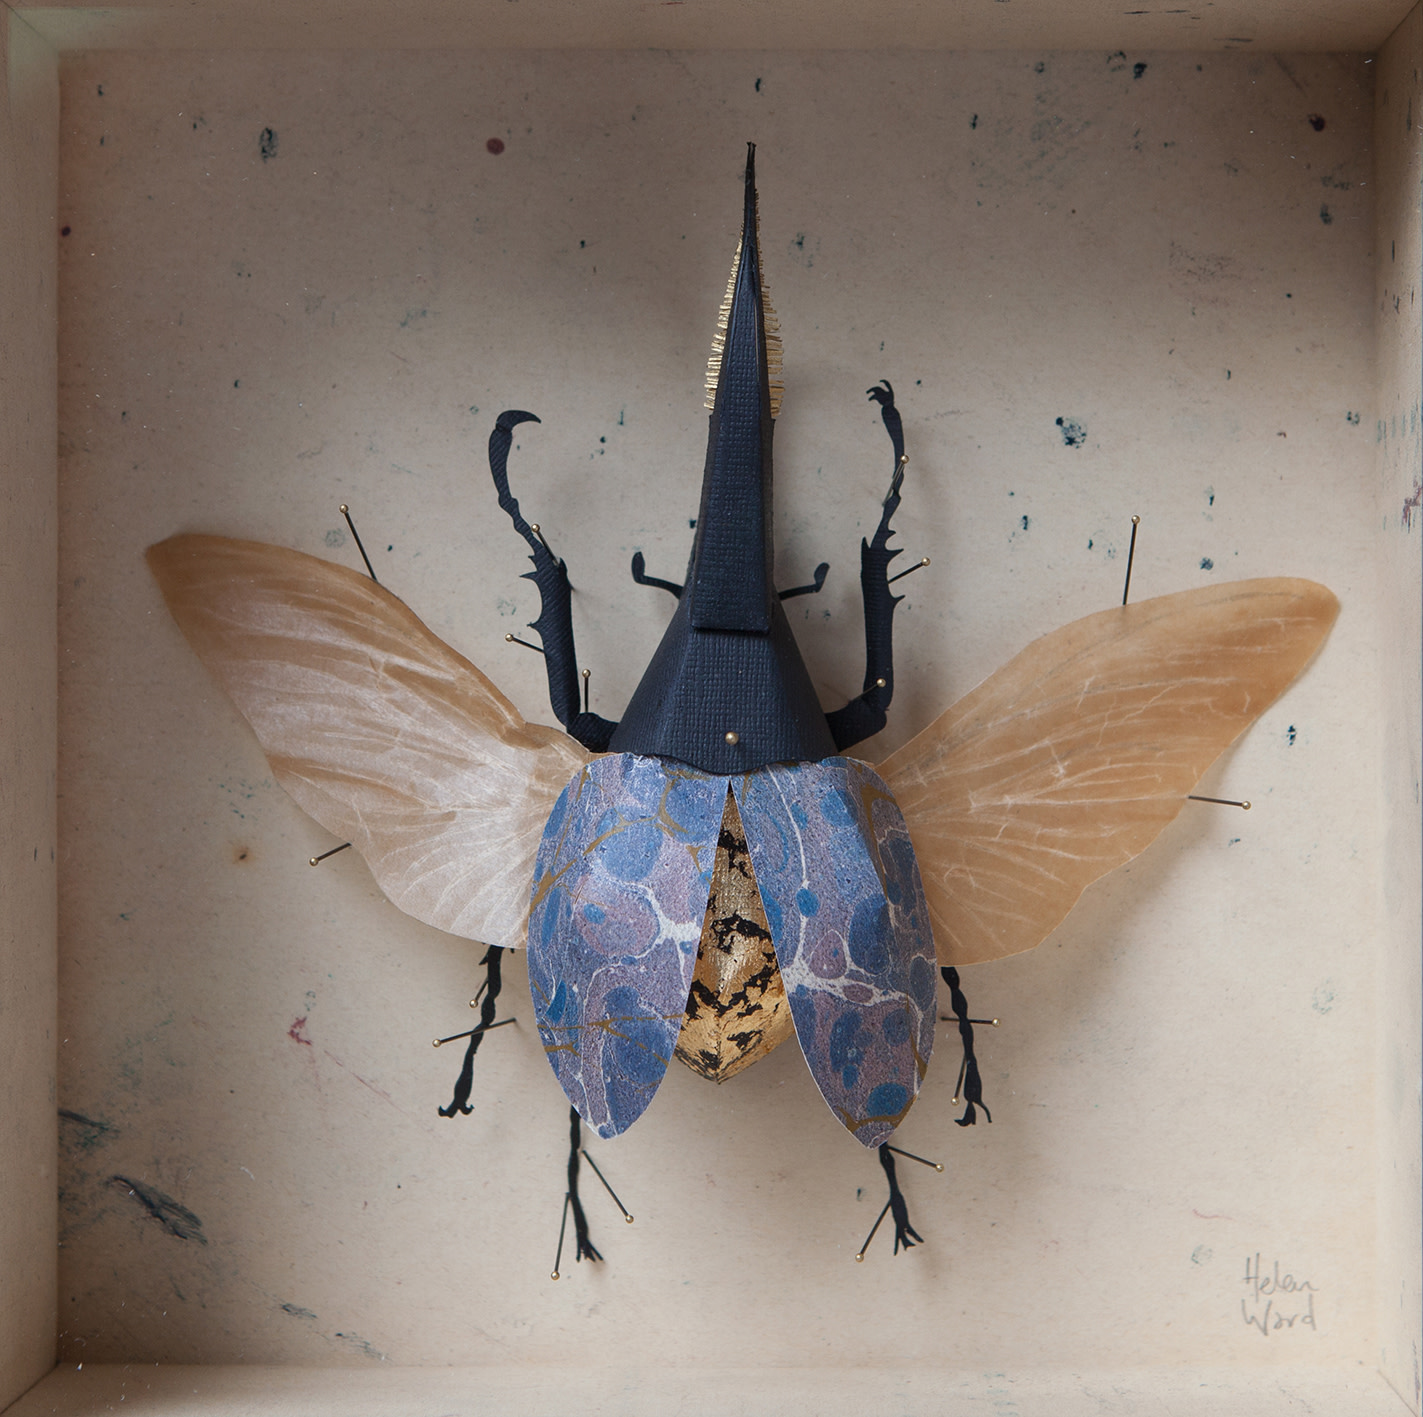 <span class=&#34;link fancybox-details-link&#34;><a href=&#34;/artists/142-helen-ward/works/6229-helen-ward-blue-hercules-beetle-2019/&#34;>View Detail Page</a></span><div class=&#34;artist&#34;><strong>Helen Ward</strong></div> <div class=&#34;title&#34;><em>Blue Hercules Beetle</em>, 2019</div> <div class=&#34;medium&#34;>paper, Victorian hand-marbled papers, gold leaf, enamel pins</div> <div class=&#34;dimensions&#34;>20 x 20 cm</div><div class=&#34;price&#34;>£380.00</div><div class=&#34;copyright_line&#34;>Own Art: £ 38 x 10 Monthly 0% APR Representative Payments</div>